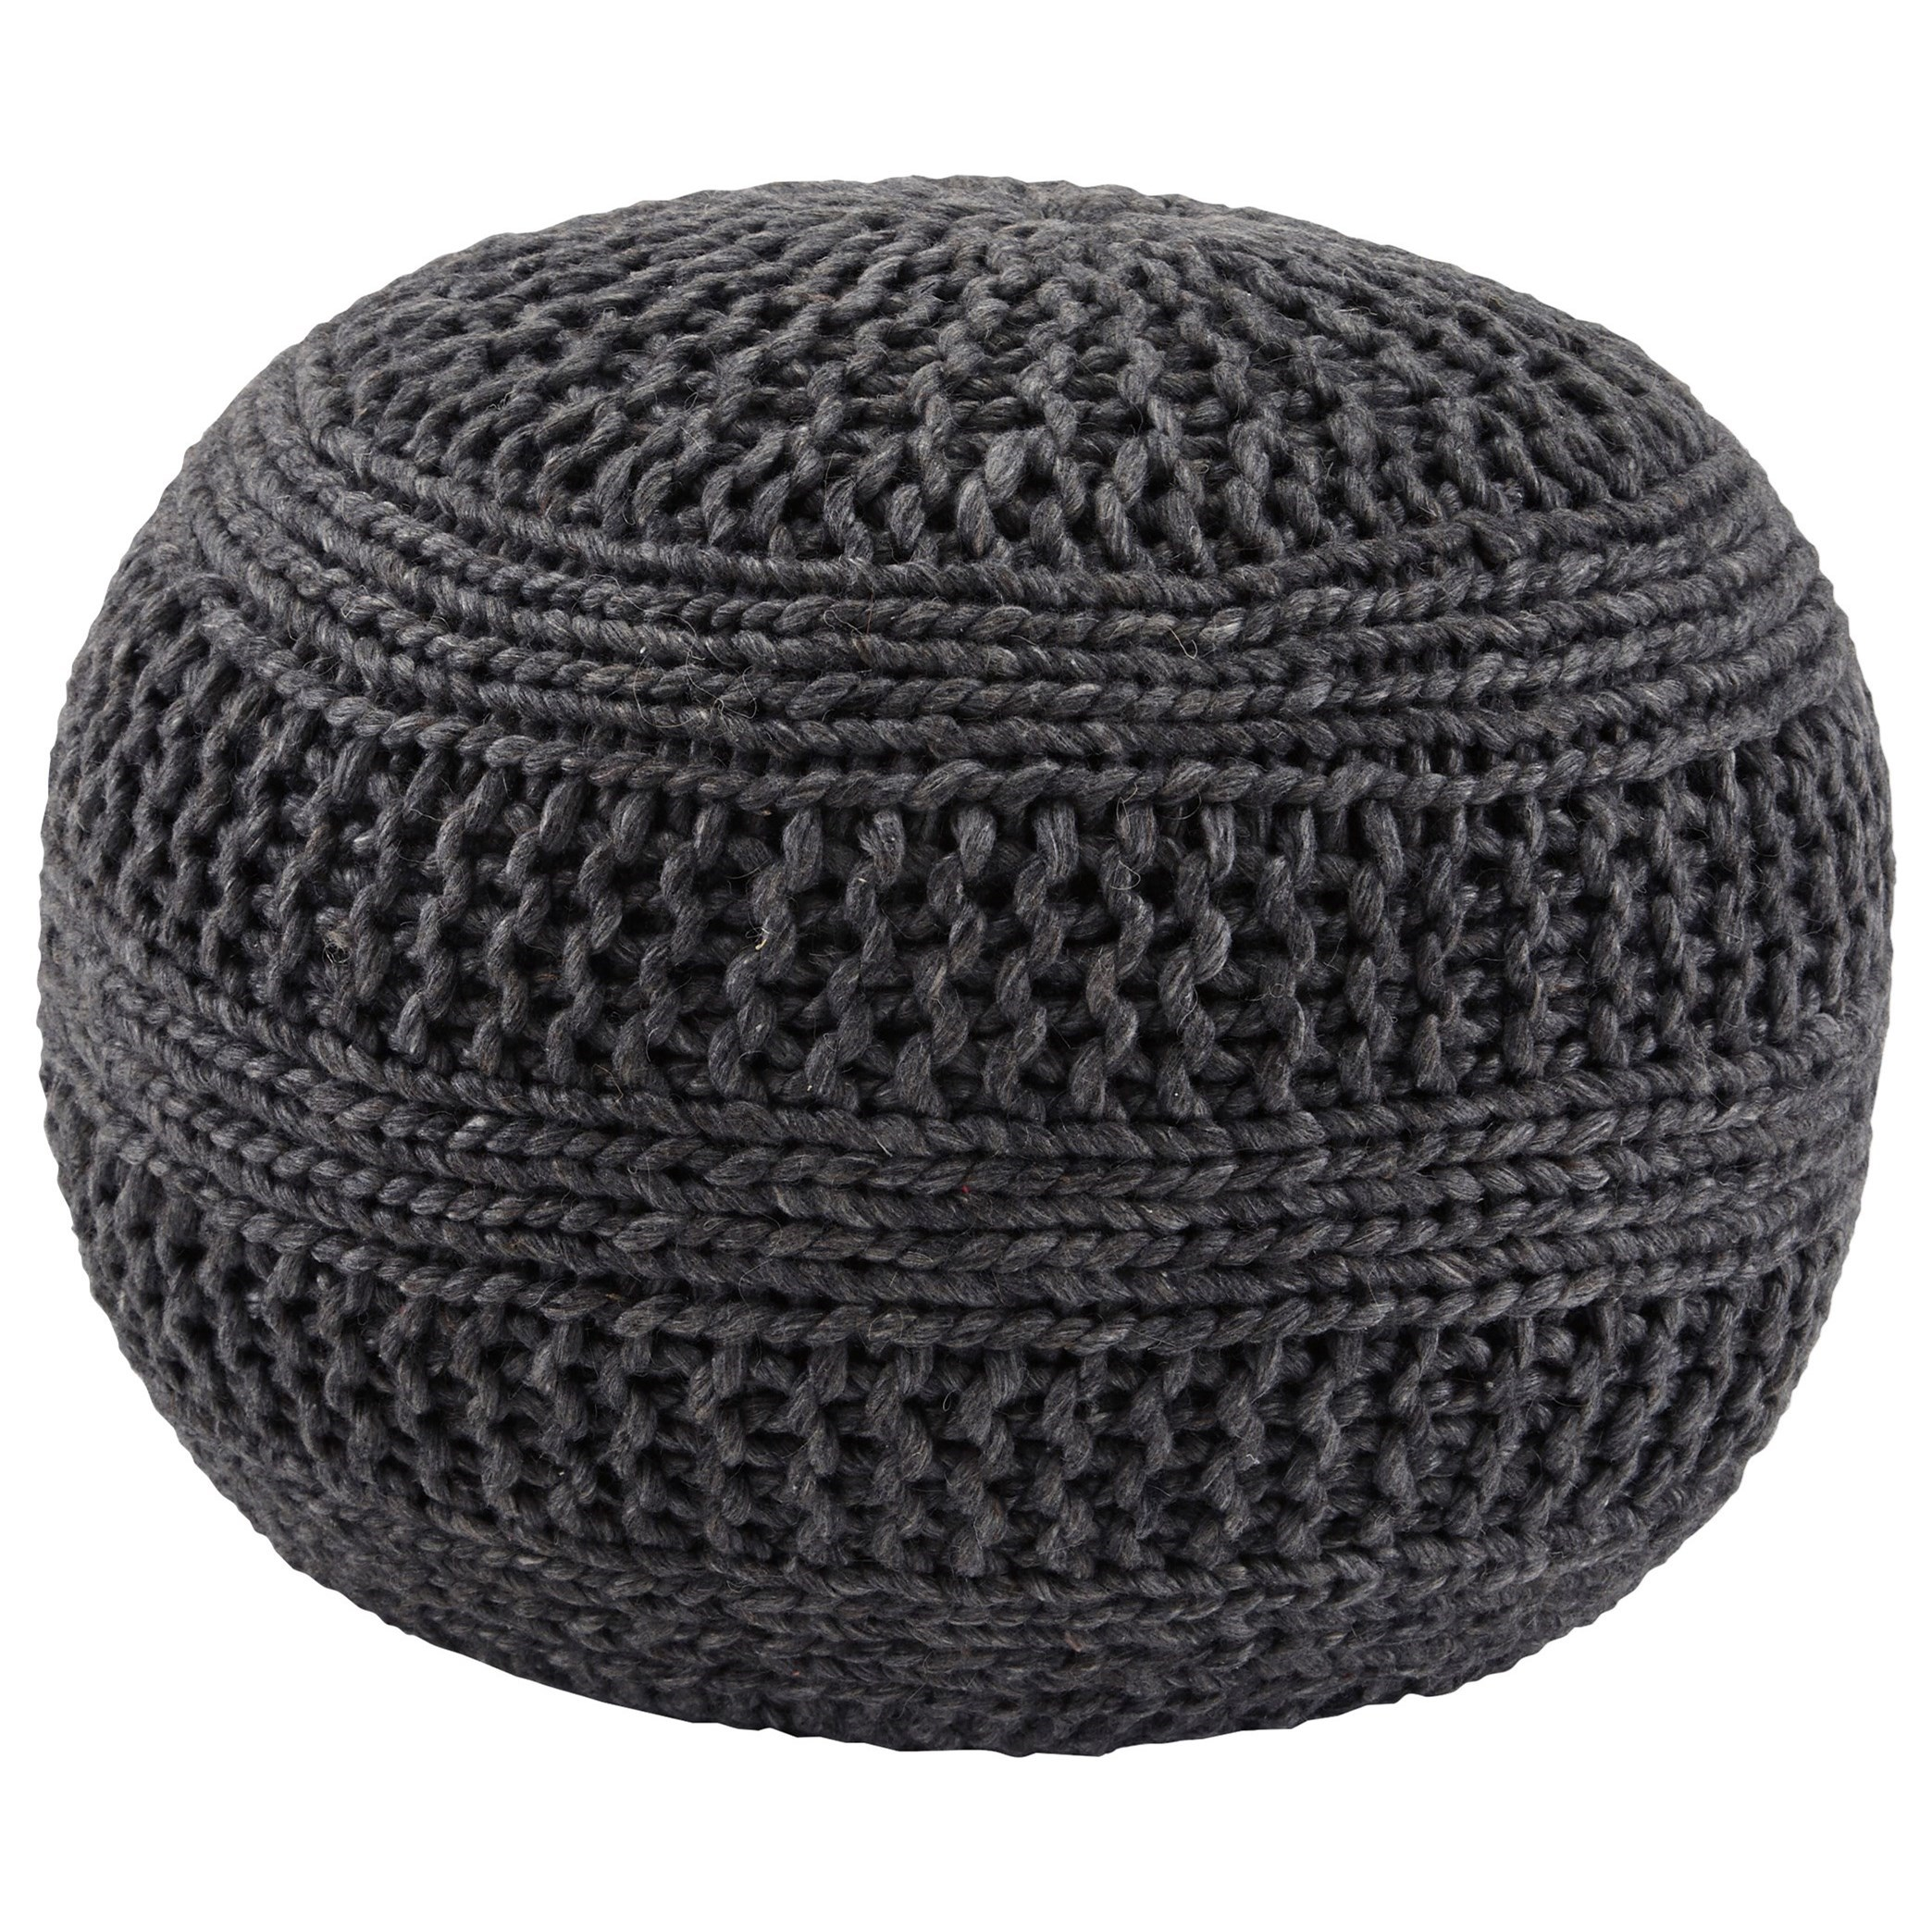 signature design by ashley poufs a1000559 benedict charcoal pouf del sol furniture poufs. Black Bedroom Furniture Sets. Home Design Ideas